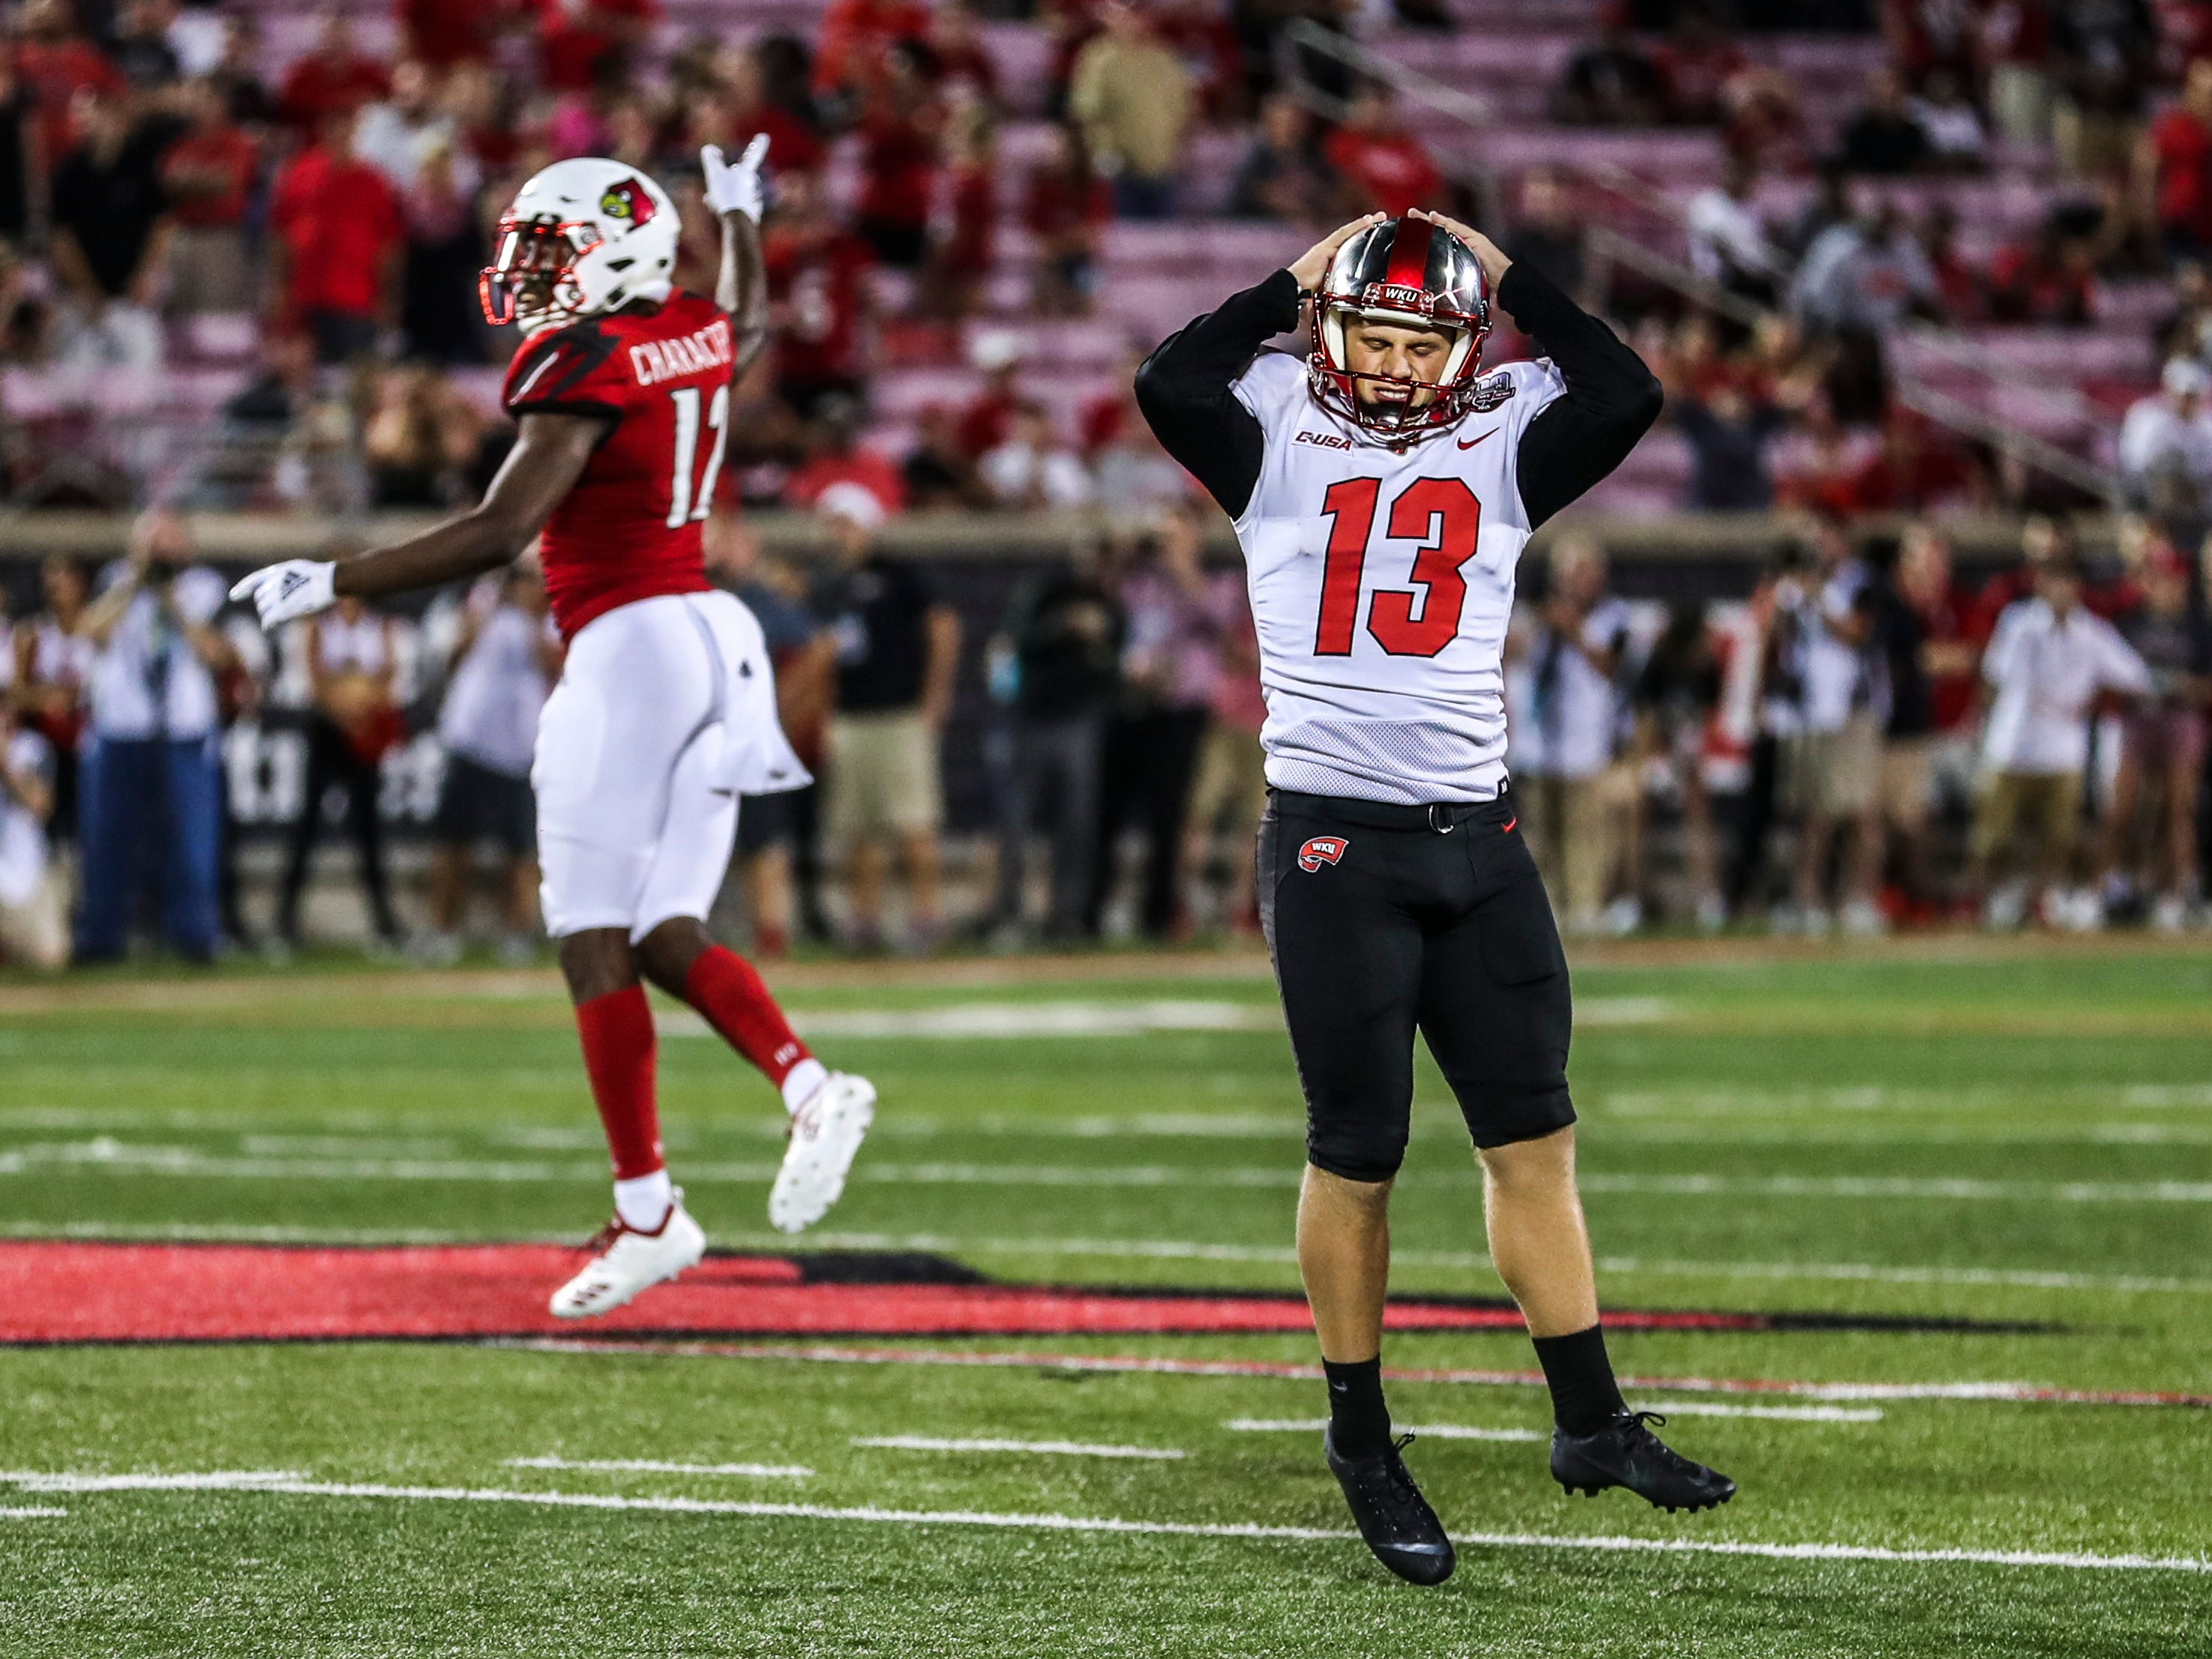 Western Kentucky kicker Ryan Nuss reacts with disappointment after his last second field goal attempt missed as Louisville squeaked by the Hilltoppers 20-17 Saturday, Sept. 15, 2018.